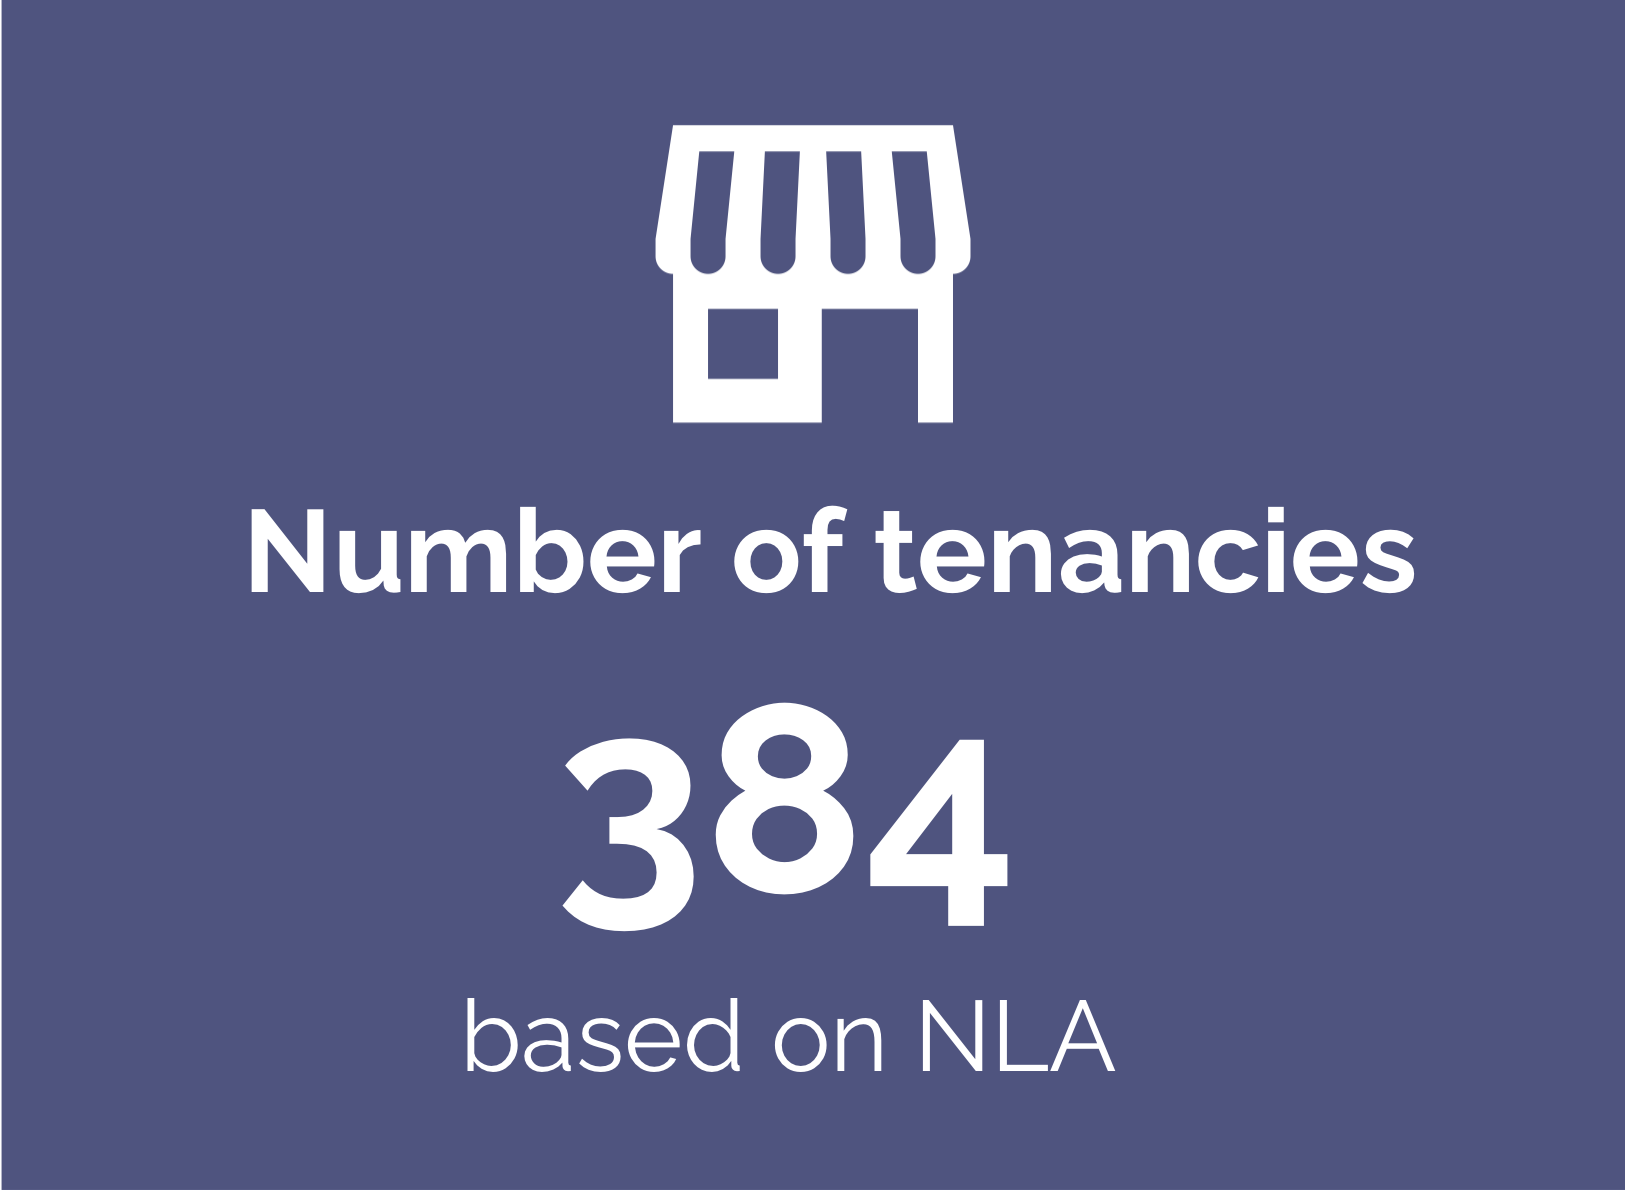 Number of tenancies